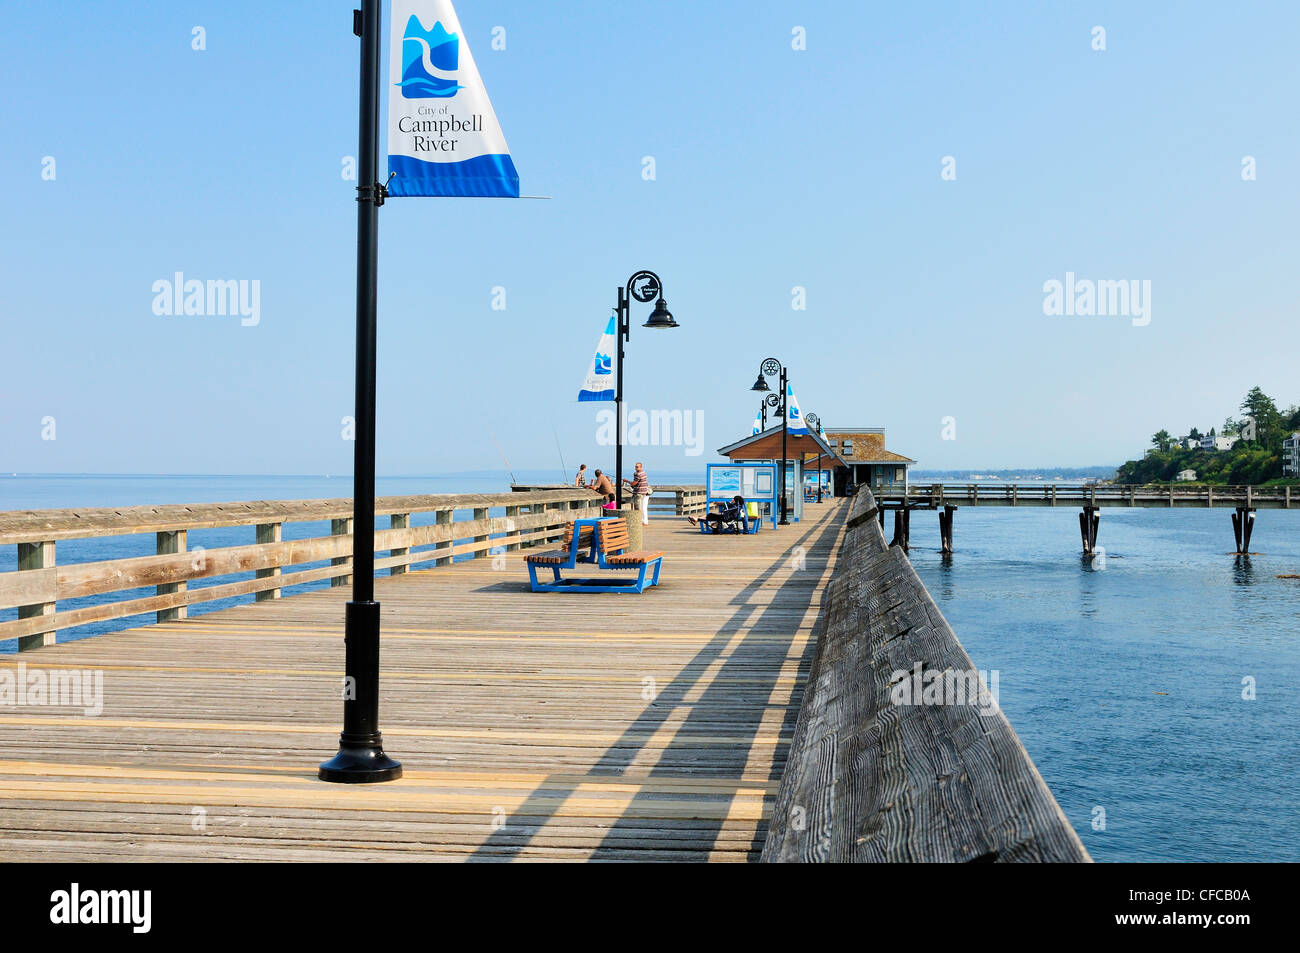 Fishing On Pier In Campbell River, British Columbia, Canada